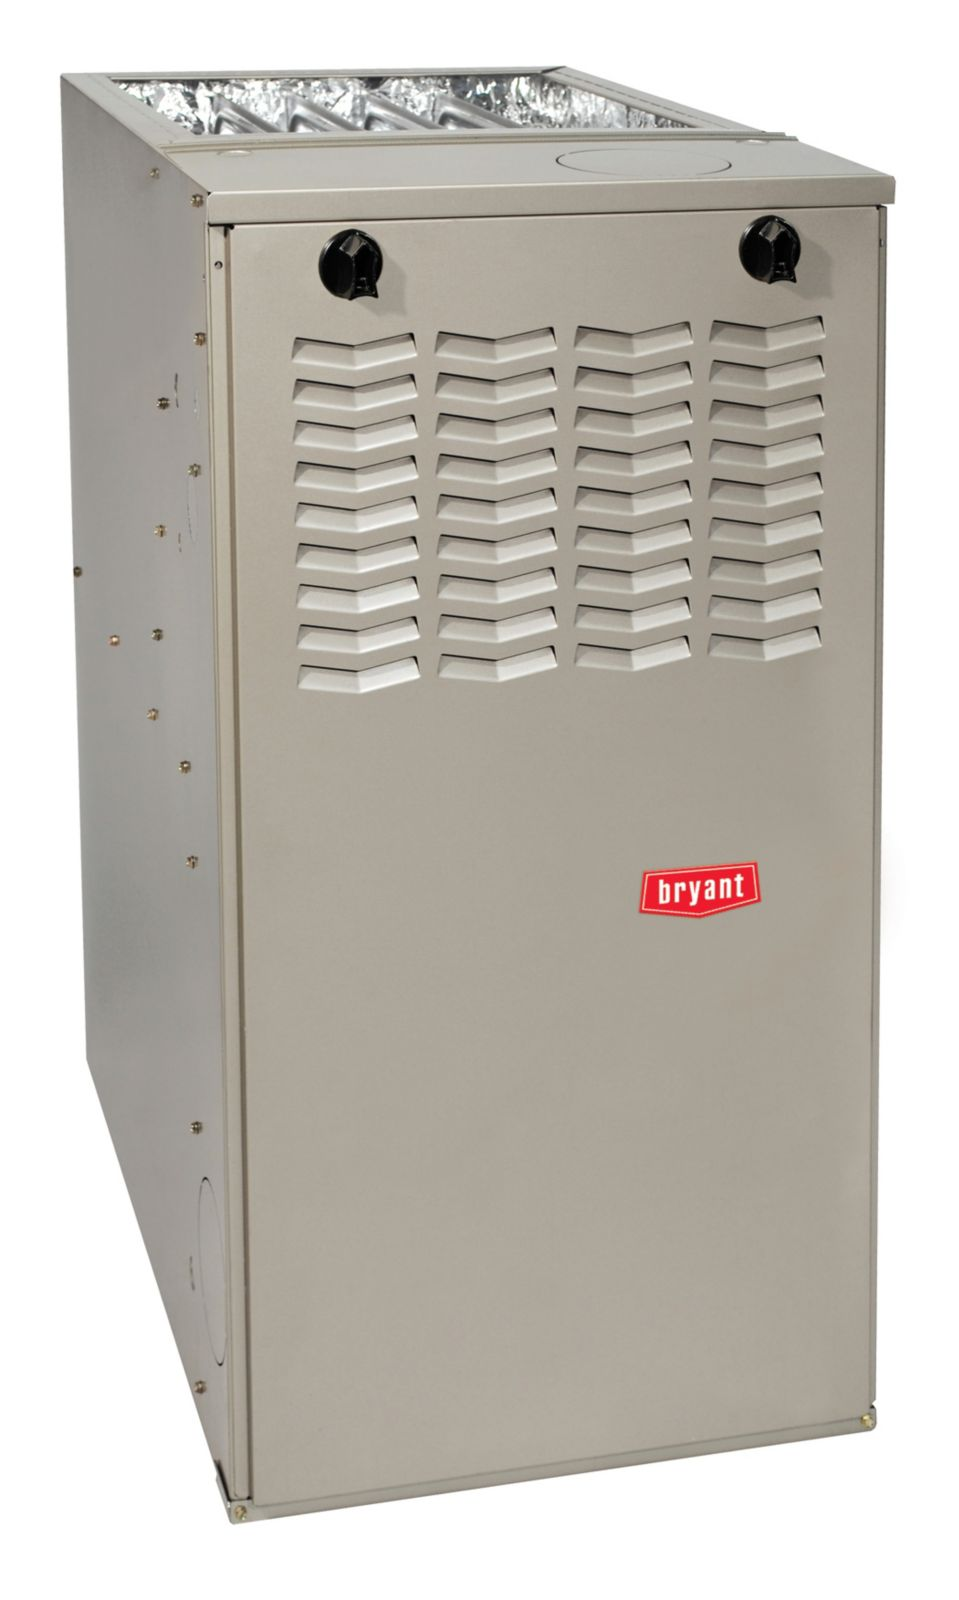 Bryant 116bna036000 Straight Cool Residential Condensers Carrier Hvac Hard Start Kit Wiring Diagram Legacy 80 Afue 70000 Btuh Multipoise Gas Furnace